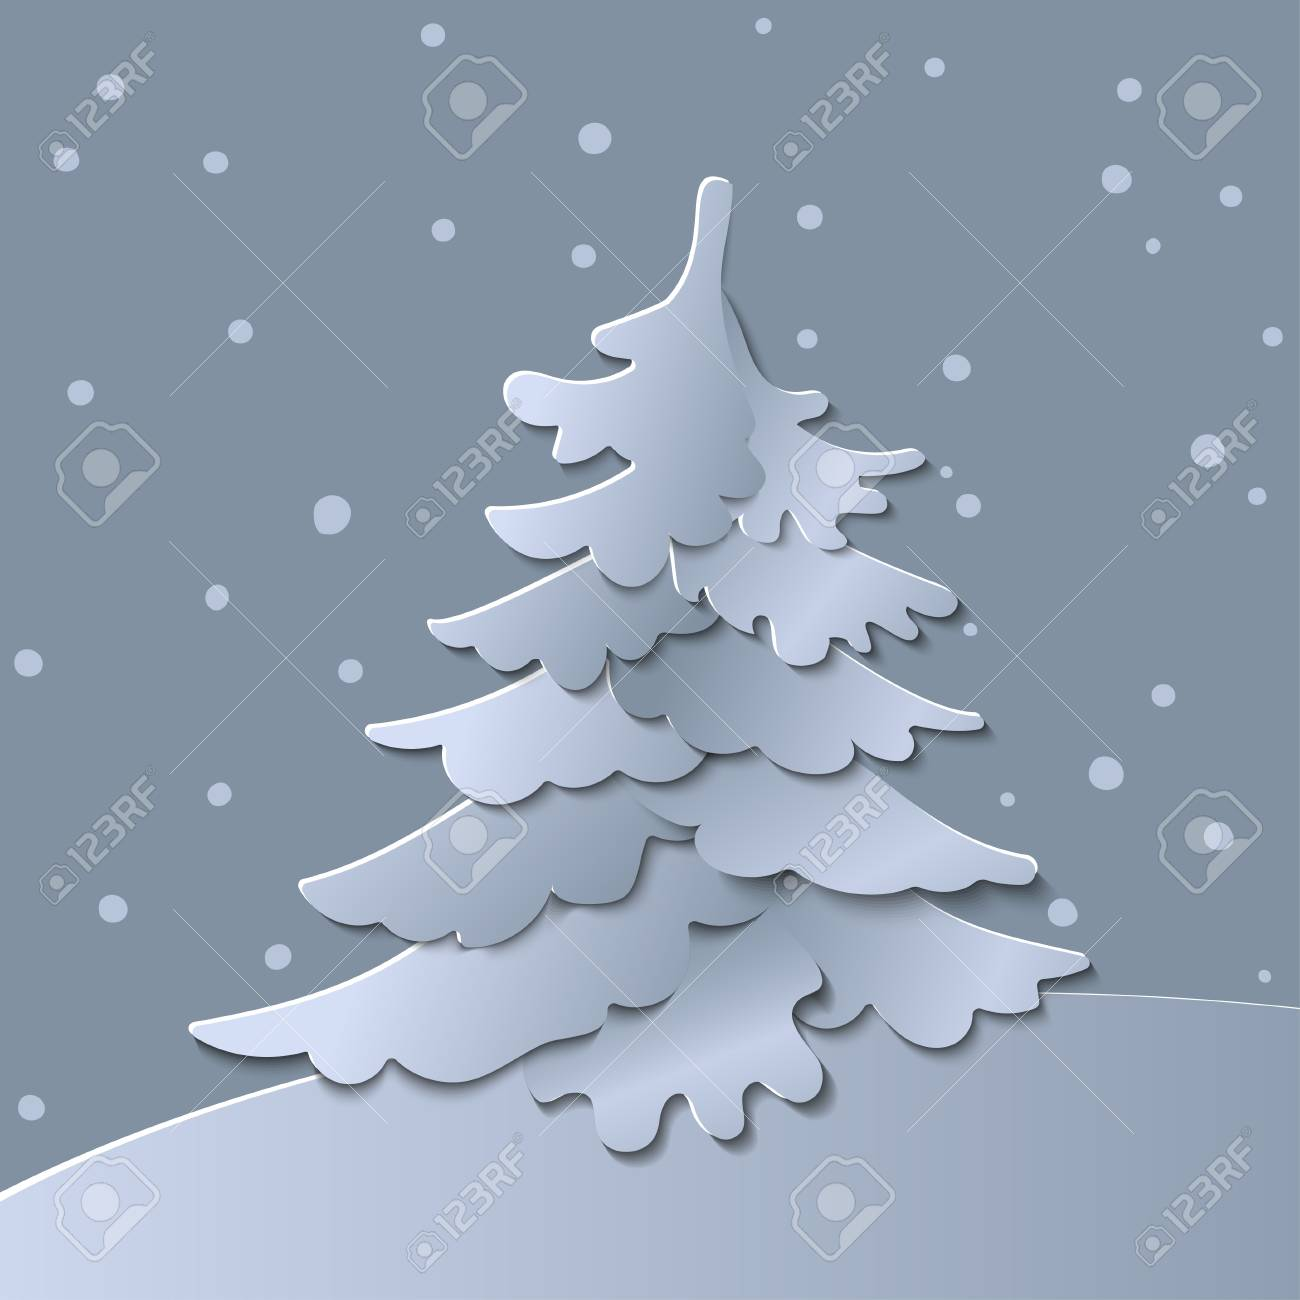 Colorful Christmas Tree Vector.3d Abstract Paper Cut Illustration Of Christmas Tree Vector